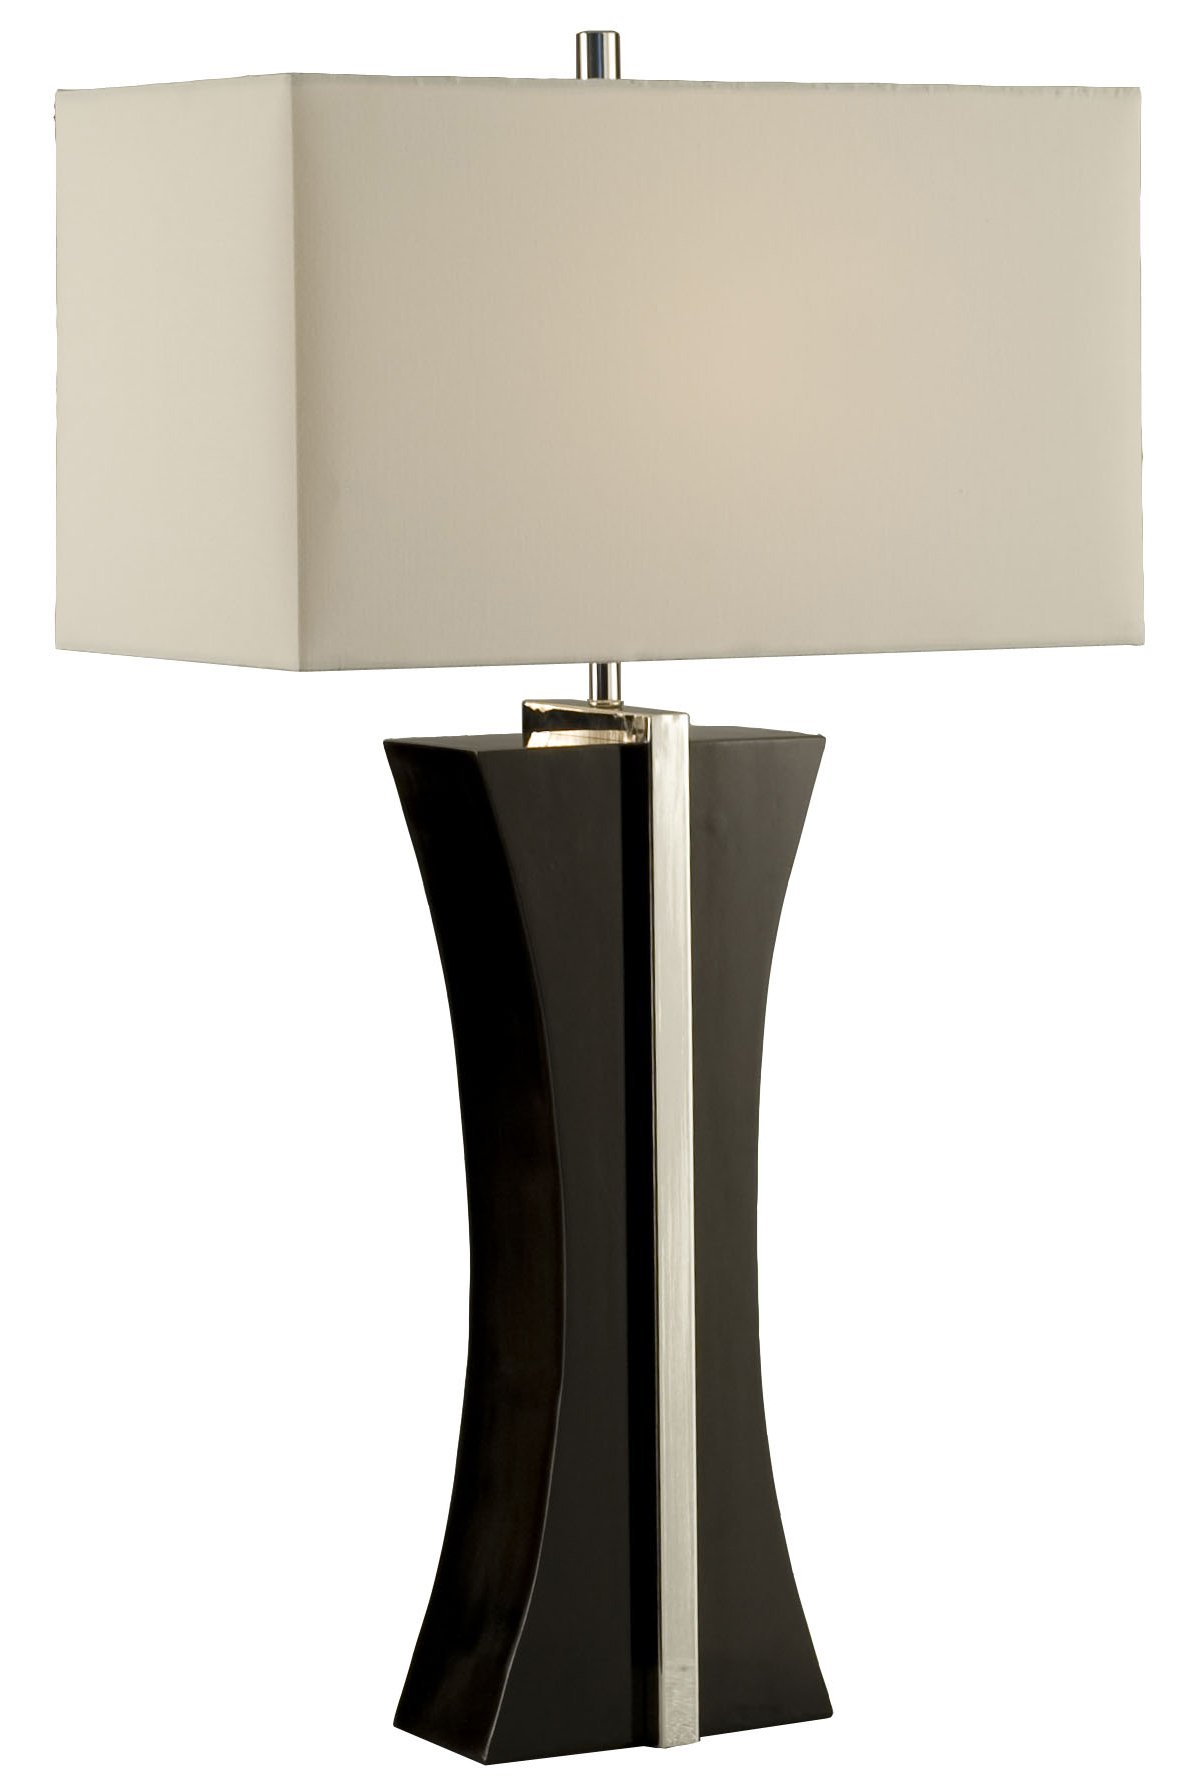 Modern Desk Lamps Nova Lighting 1010046 Ridgeway Modern Contemporary Table